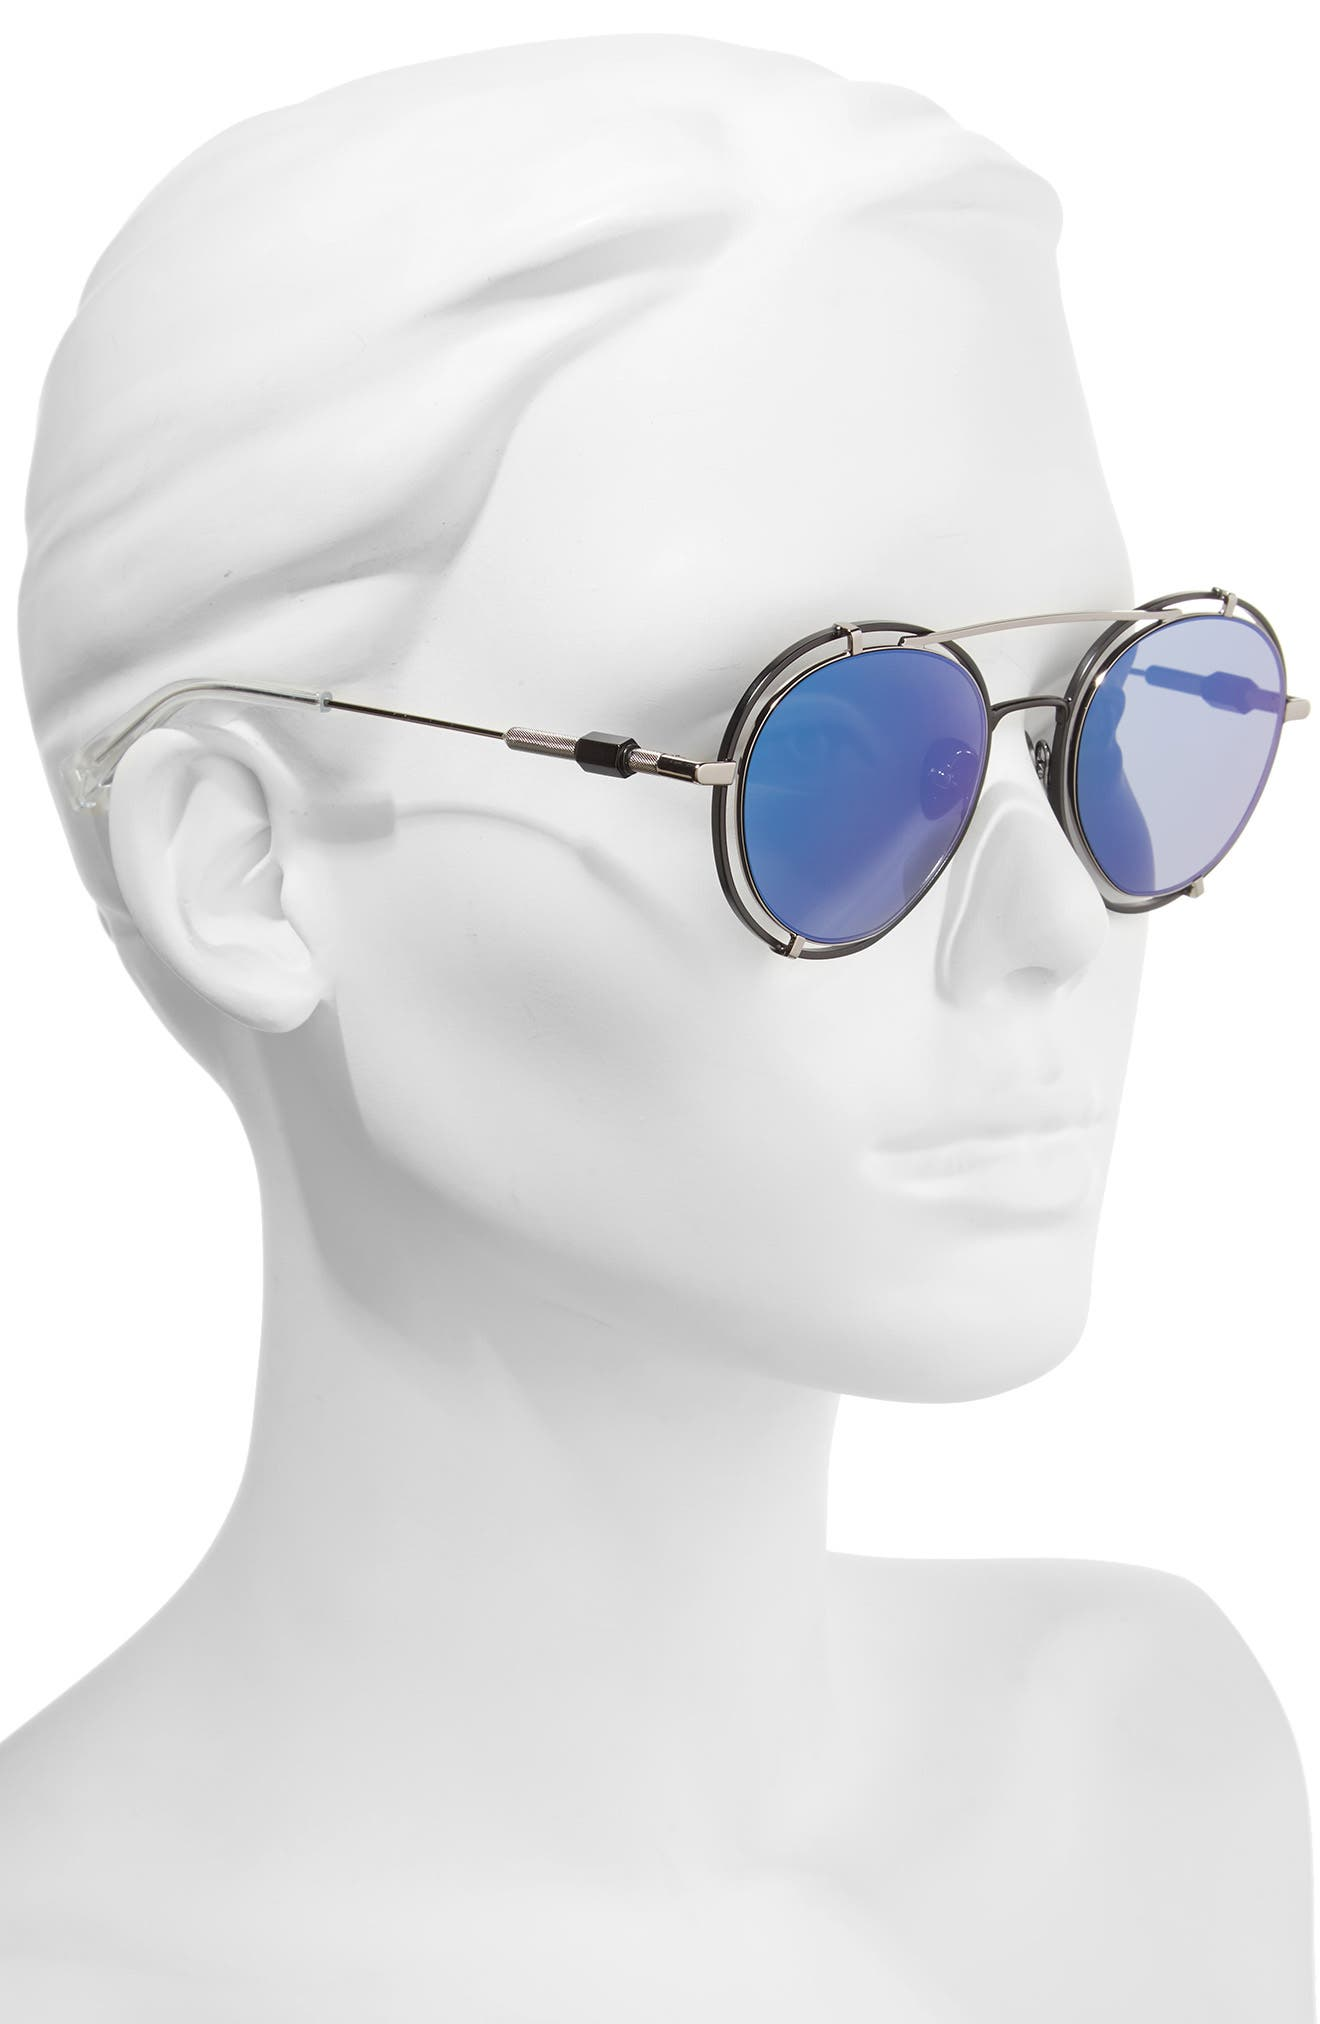 Pyn 55mm Mirrored Sunglasses,                             Alternate thumbnail 2, color,                             001